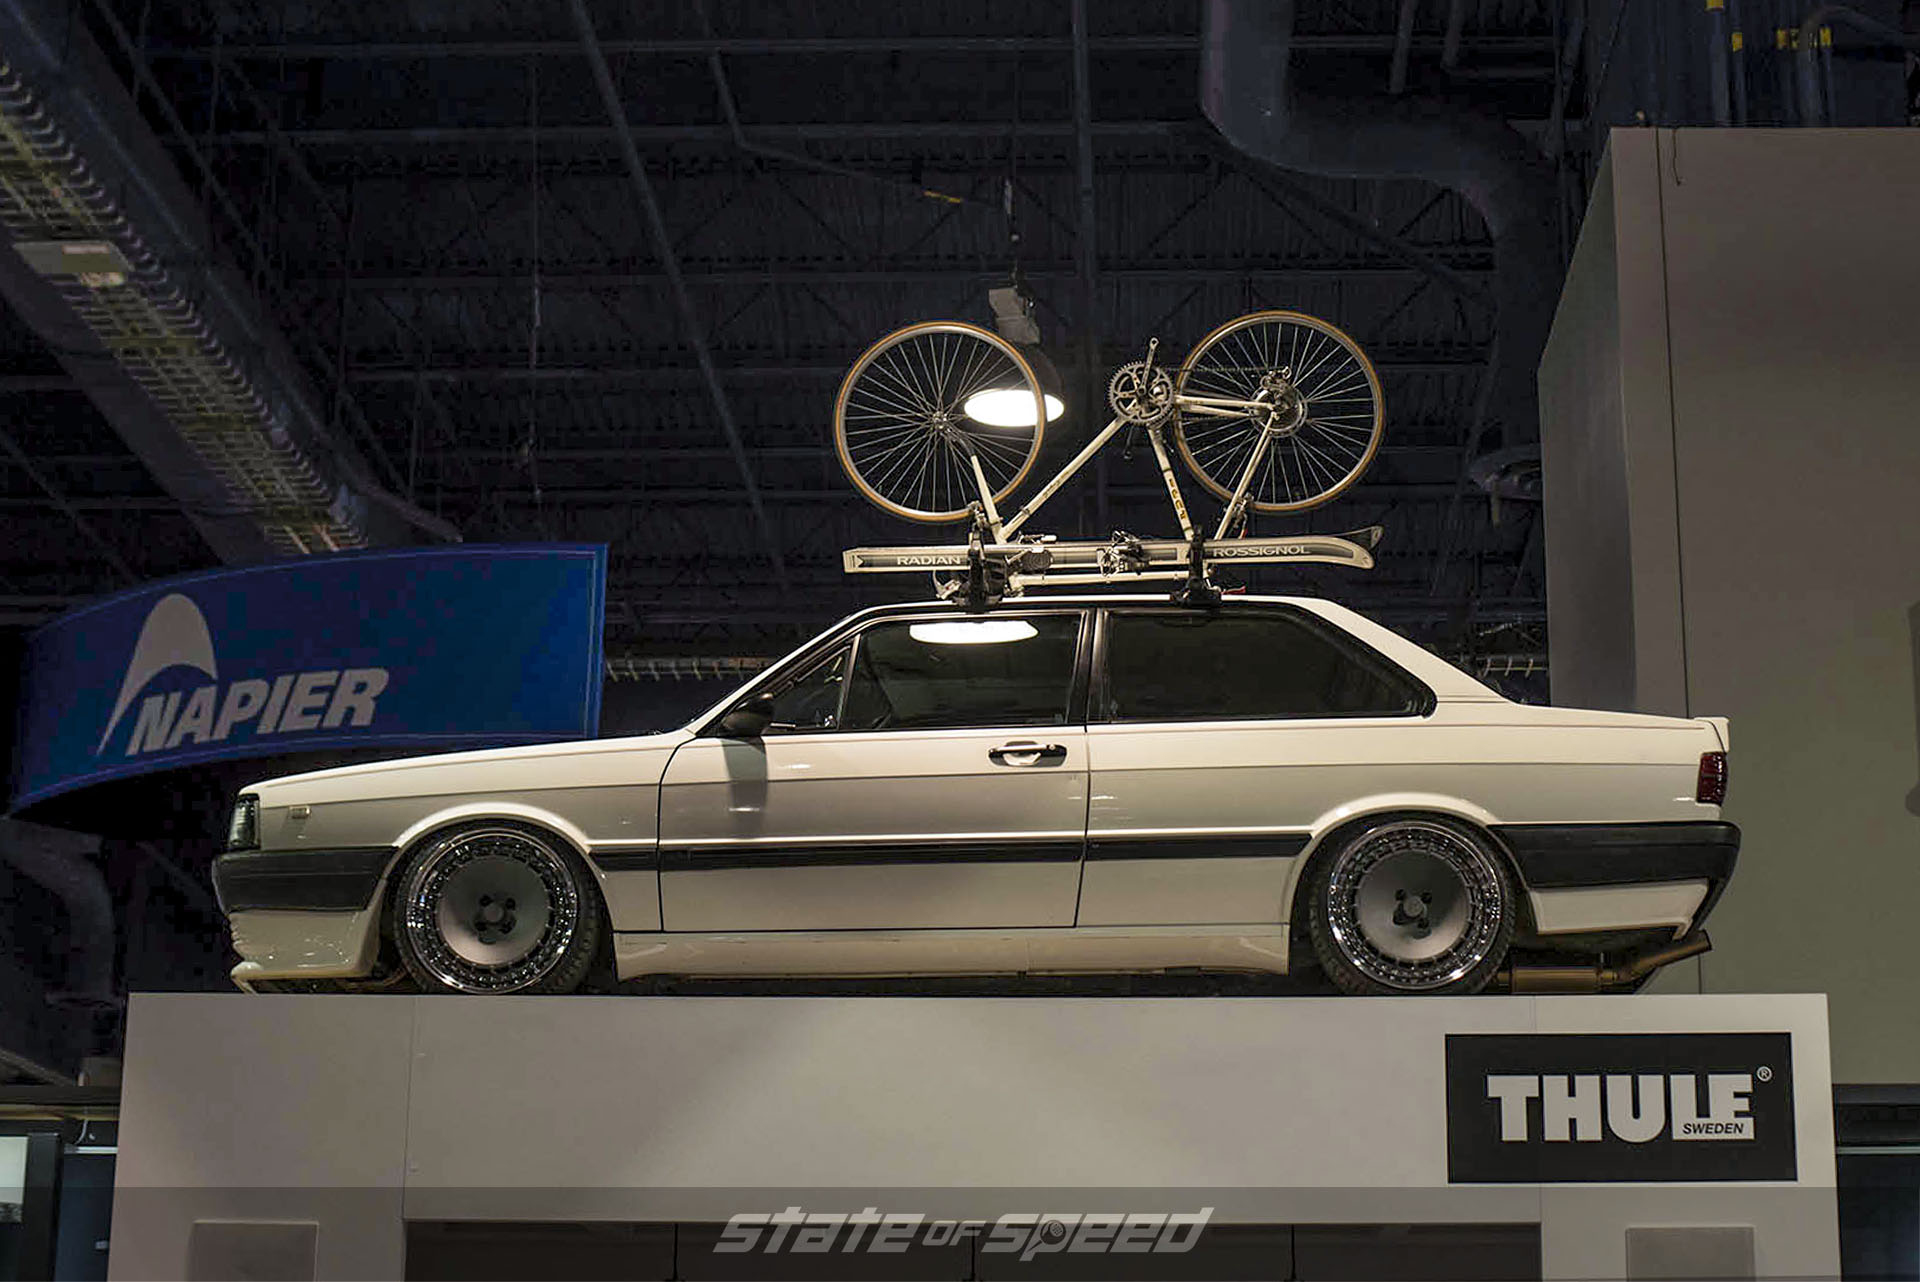 Thule booth with a slammed mercedes on display with a roof rack